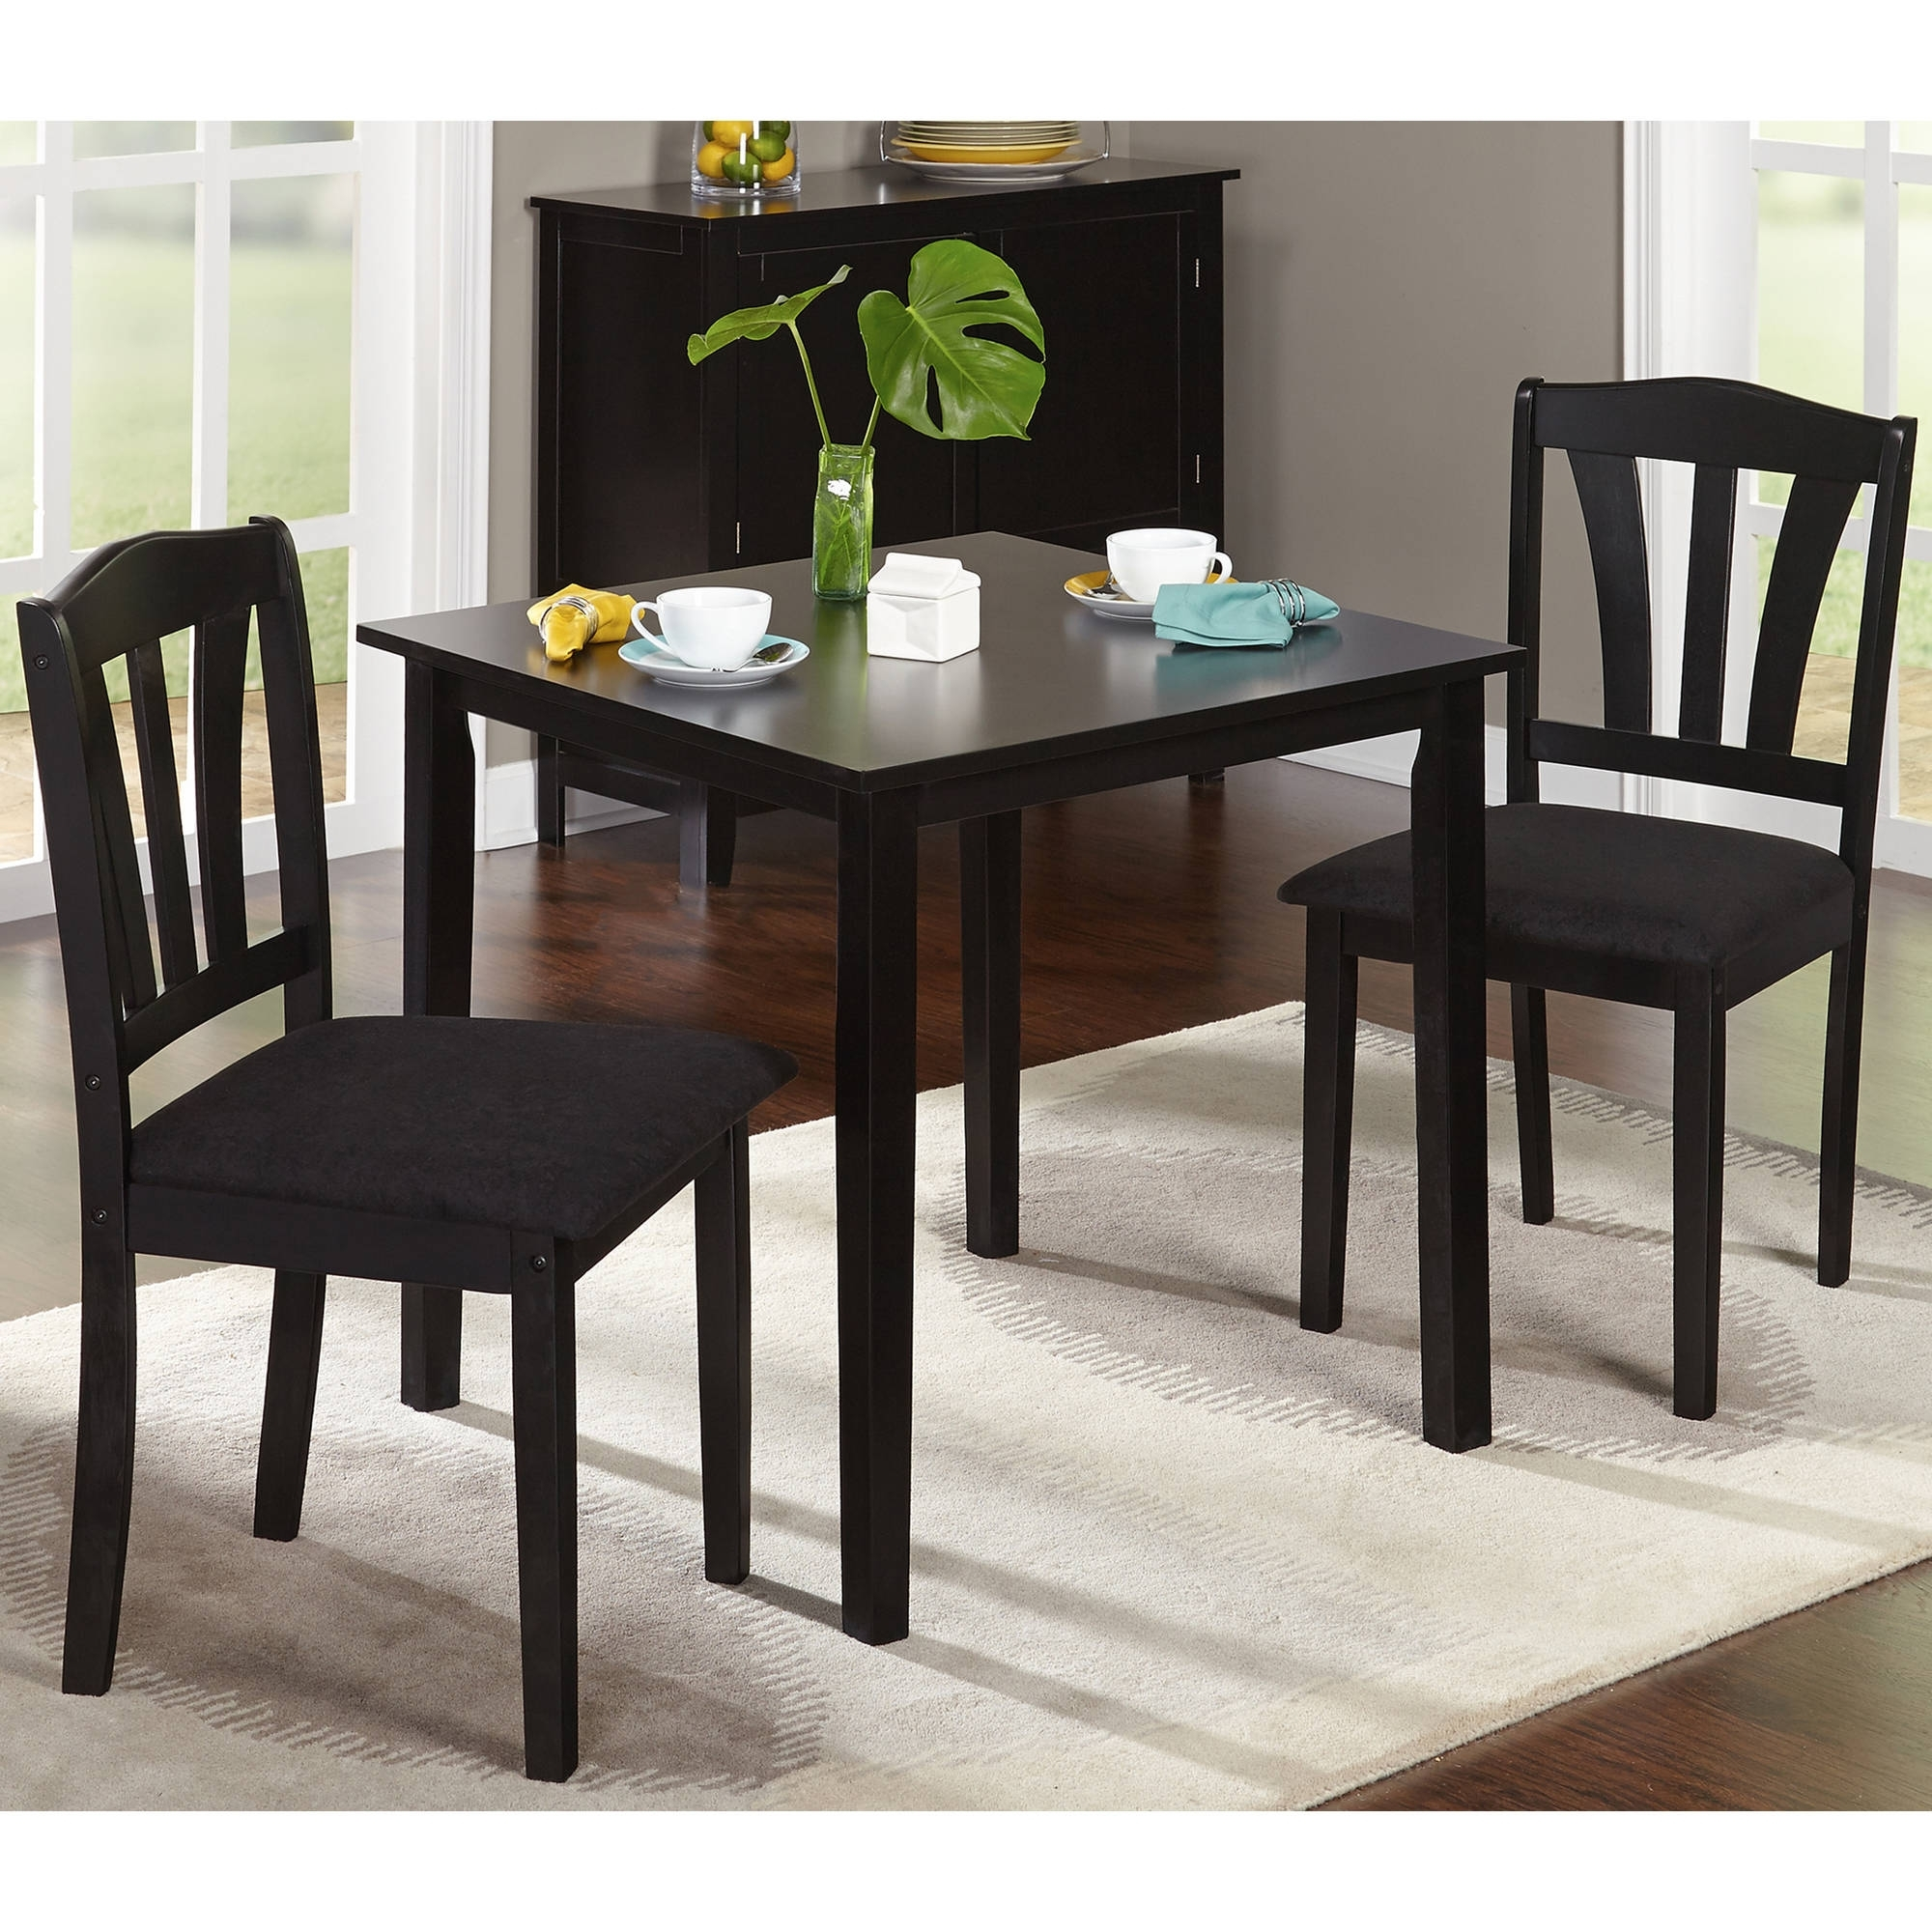 Best And Newest Metropolitan 3 Piece Dining Set, Multiple Finishes – Walmart For Dining Tables And 2 Chairs (View 4 of 25)